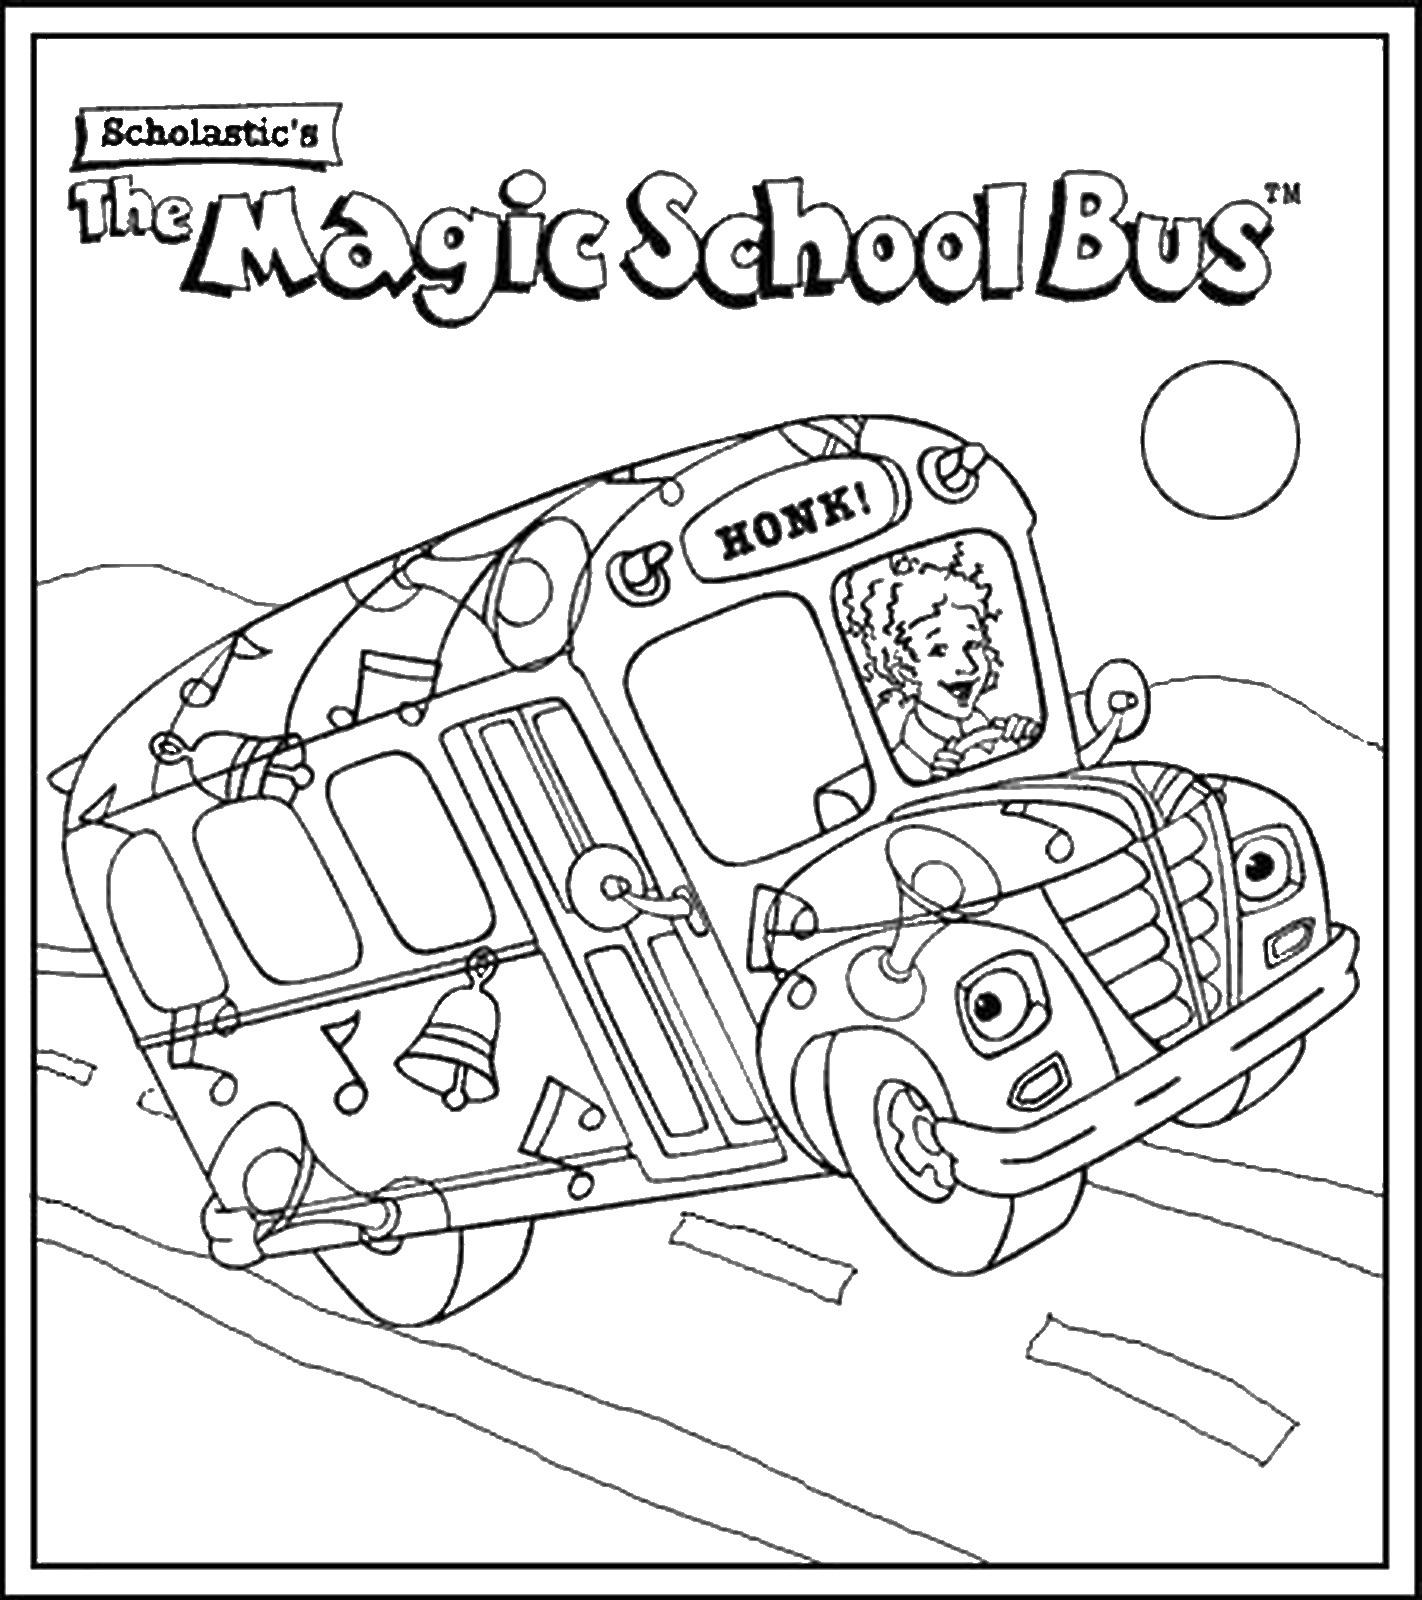 School Buses Drawing At Getdrawings